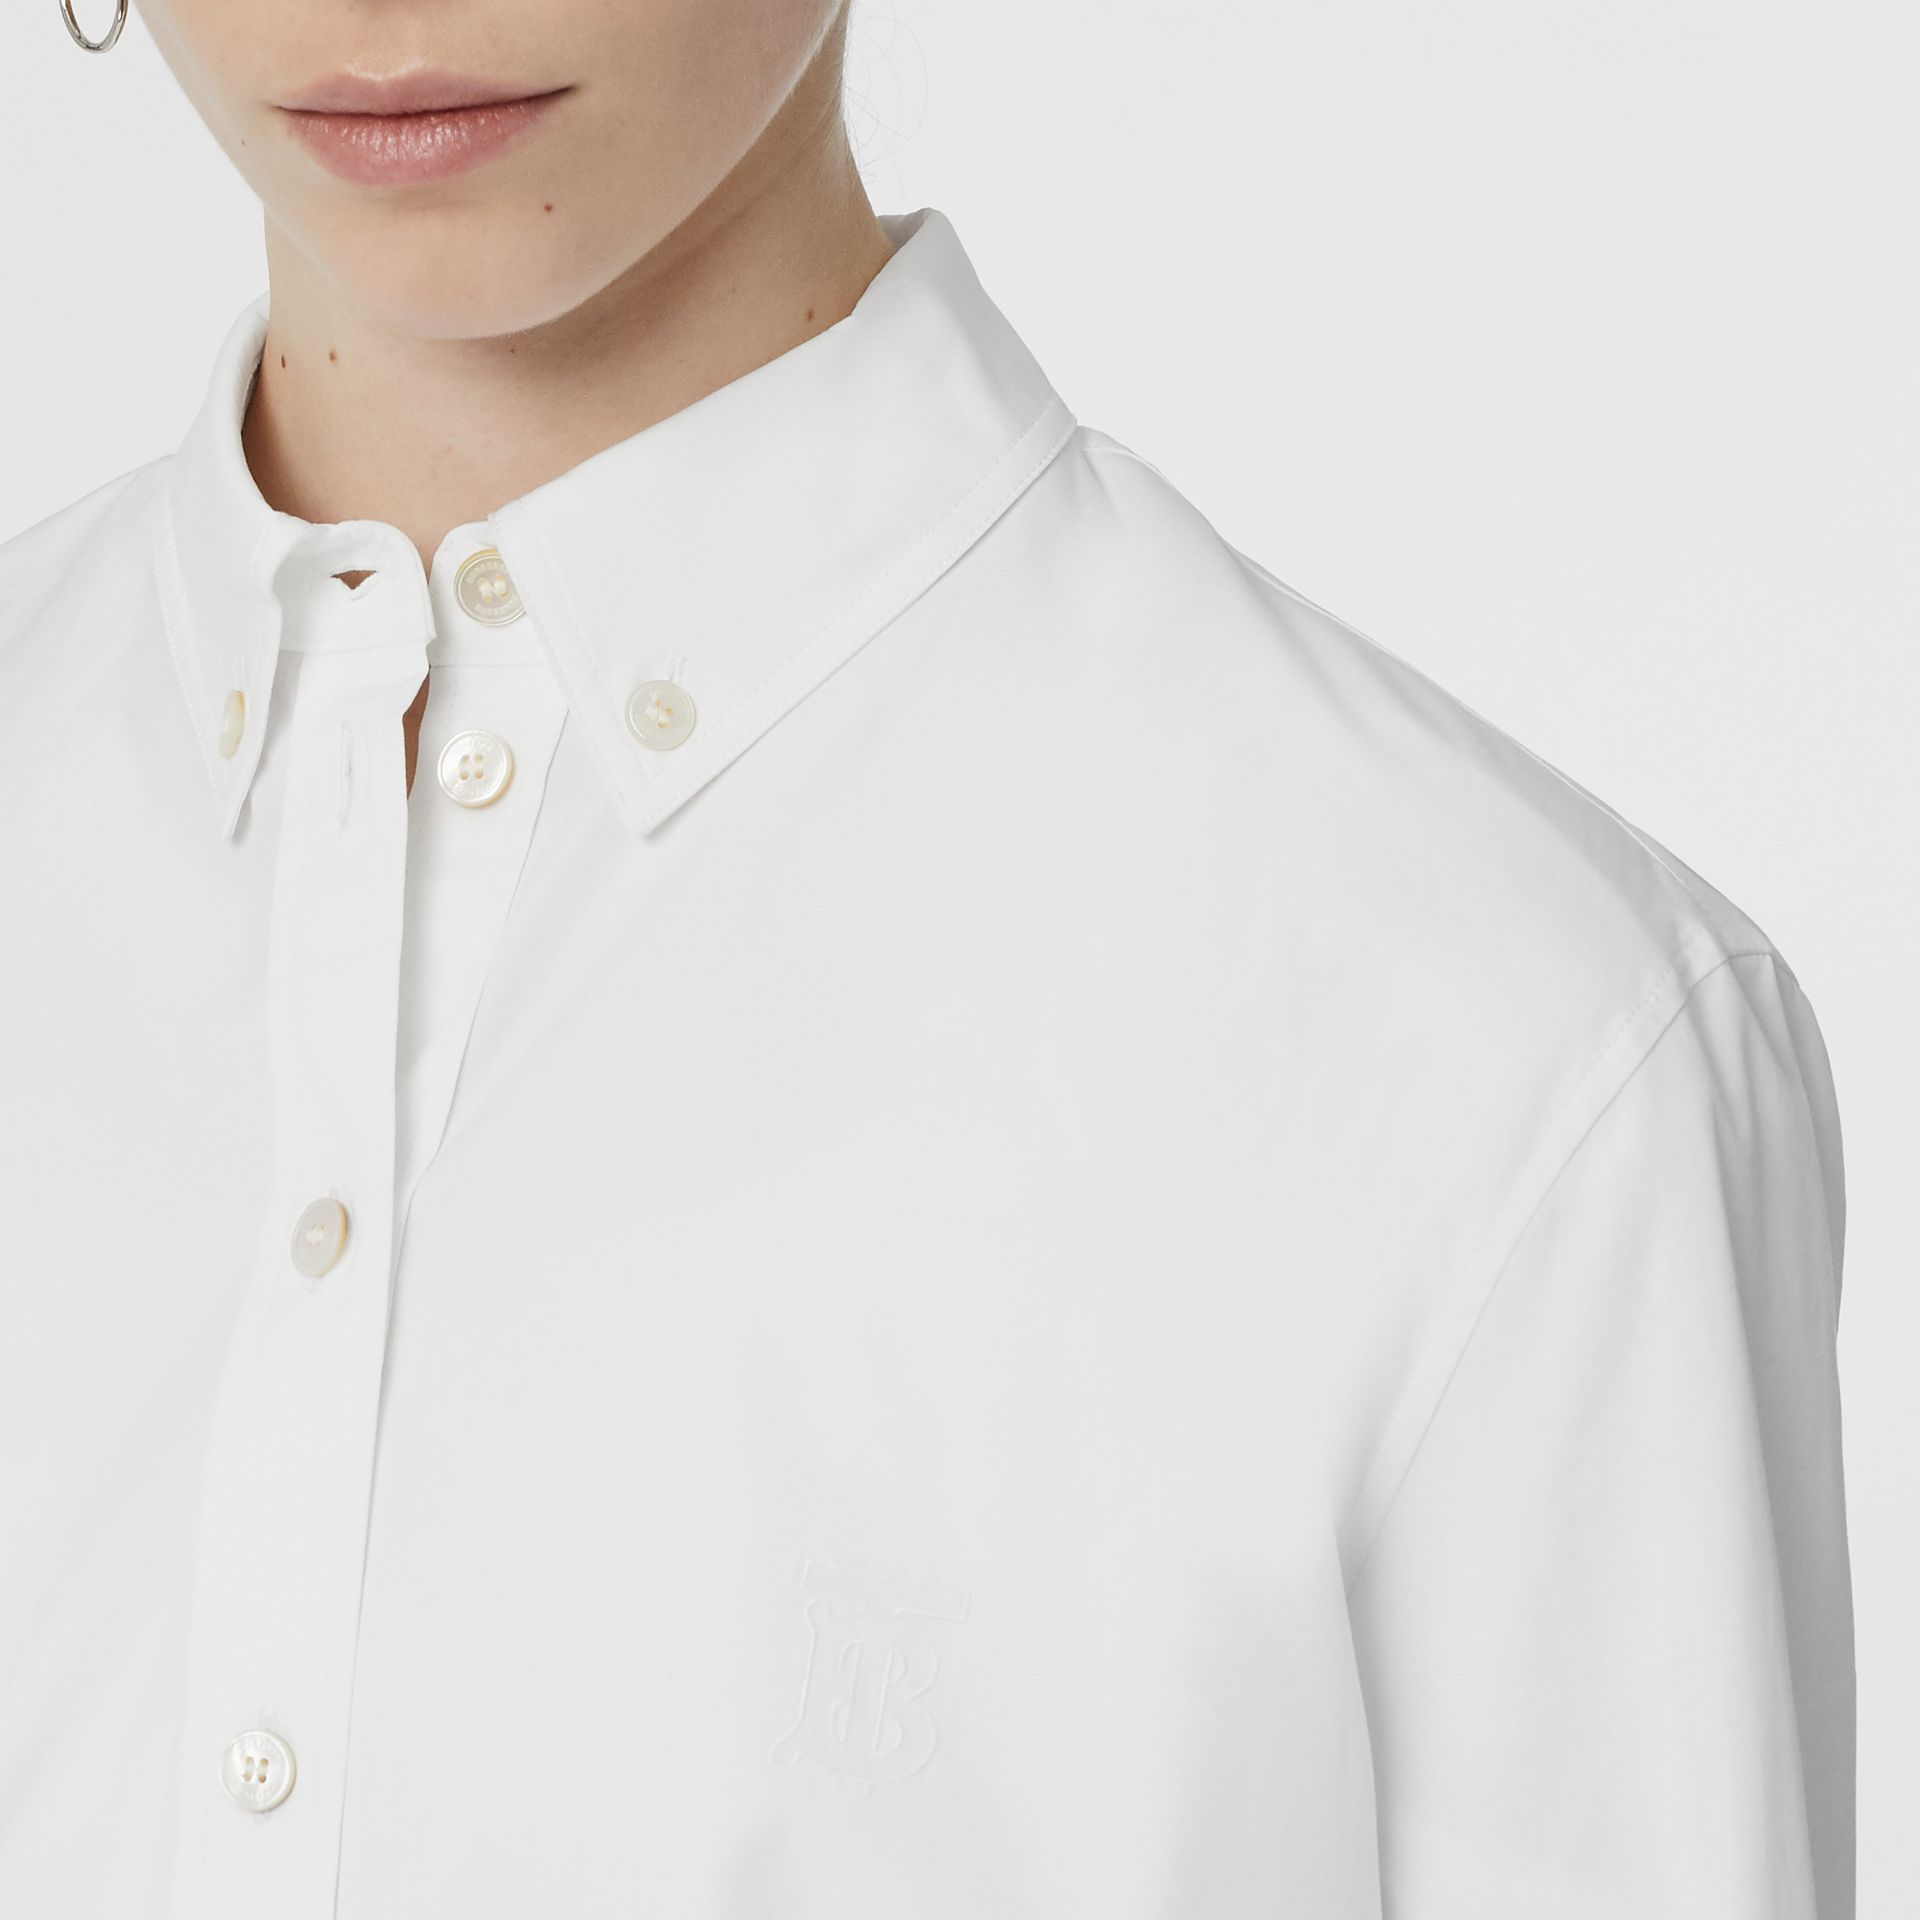 Button-down Collar Monogram Motif Cotton Shirt in White - Women | Burberry United Kingdom - gallery image 1